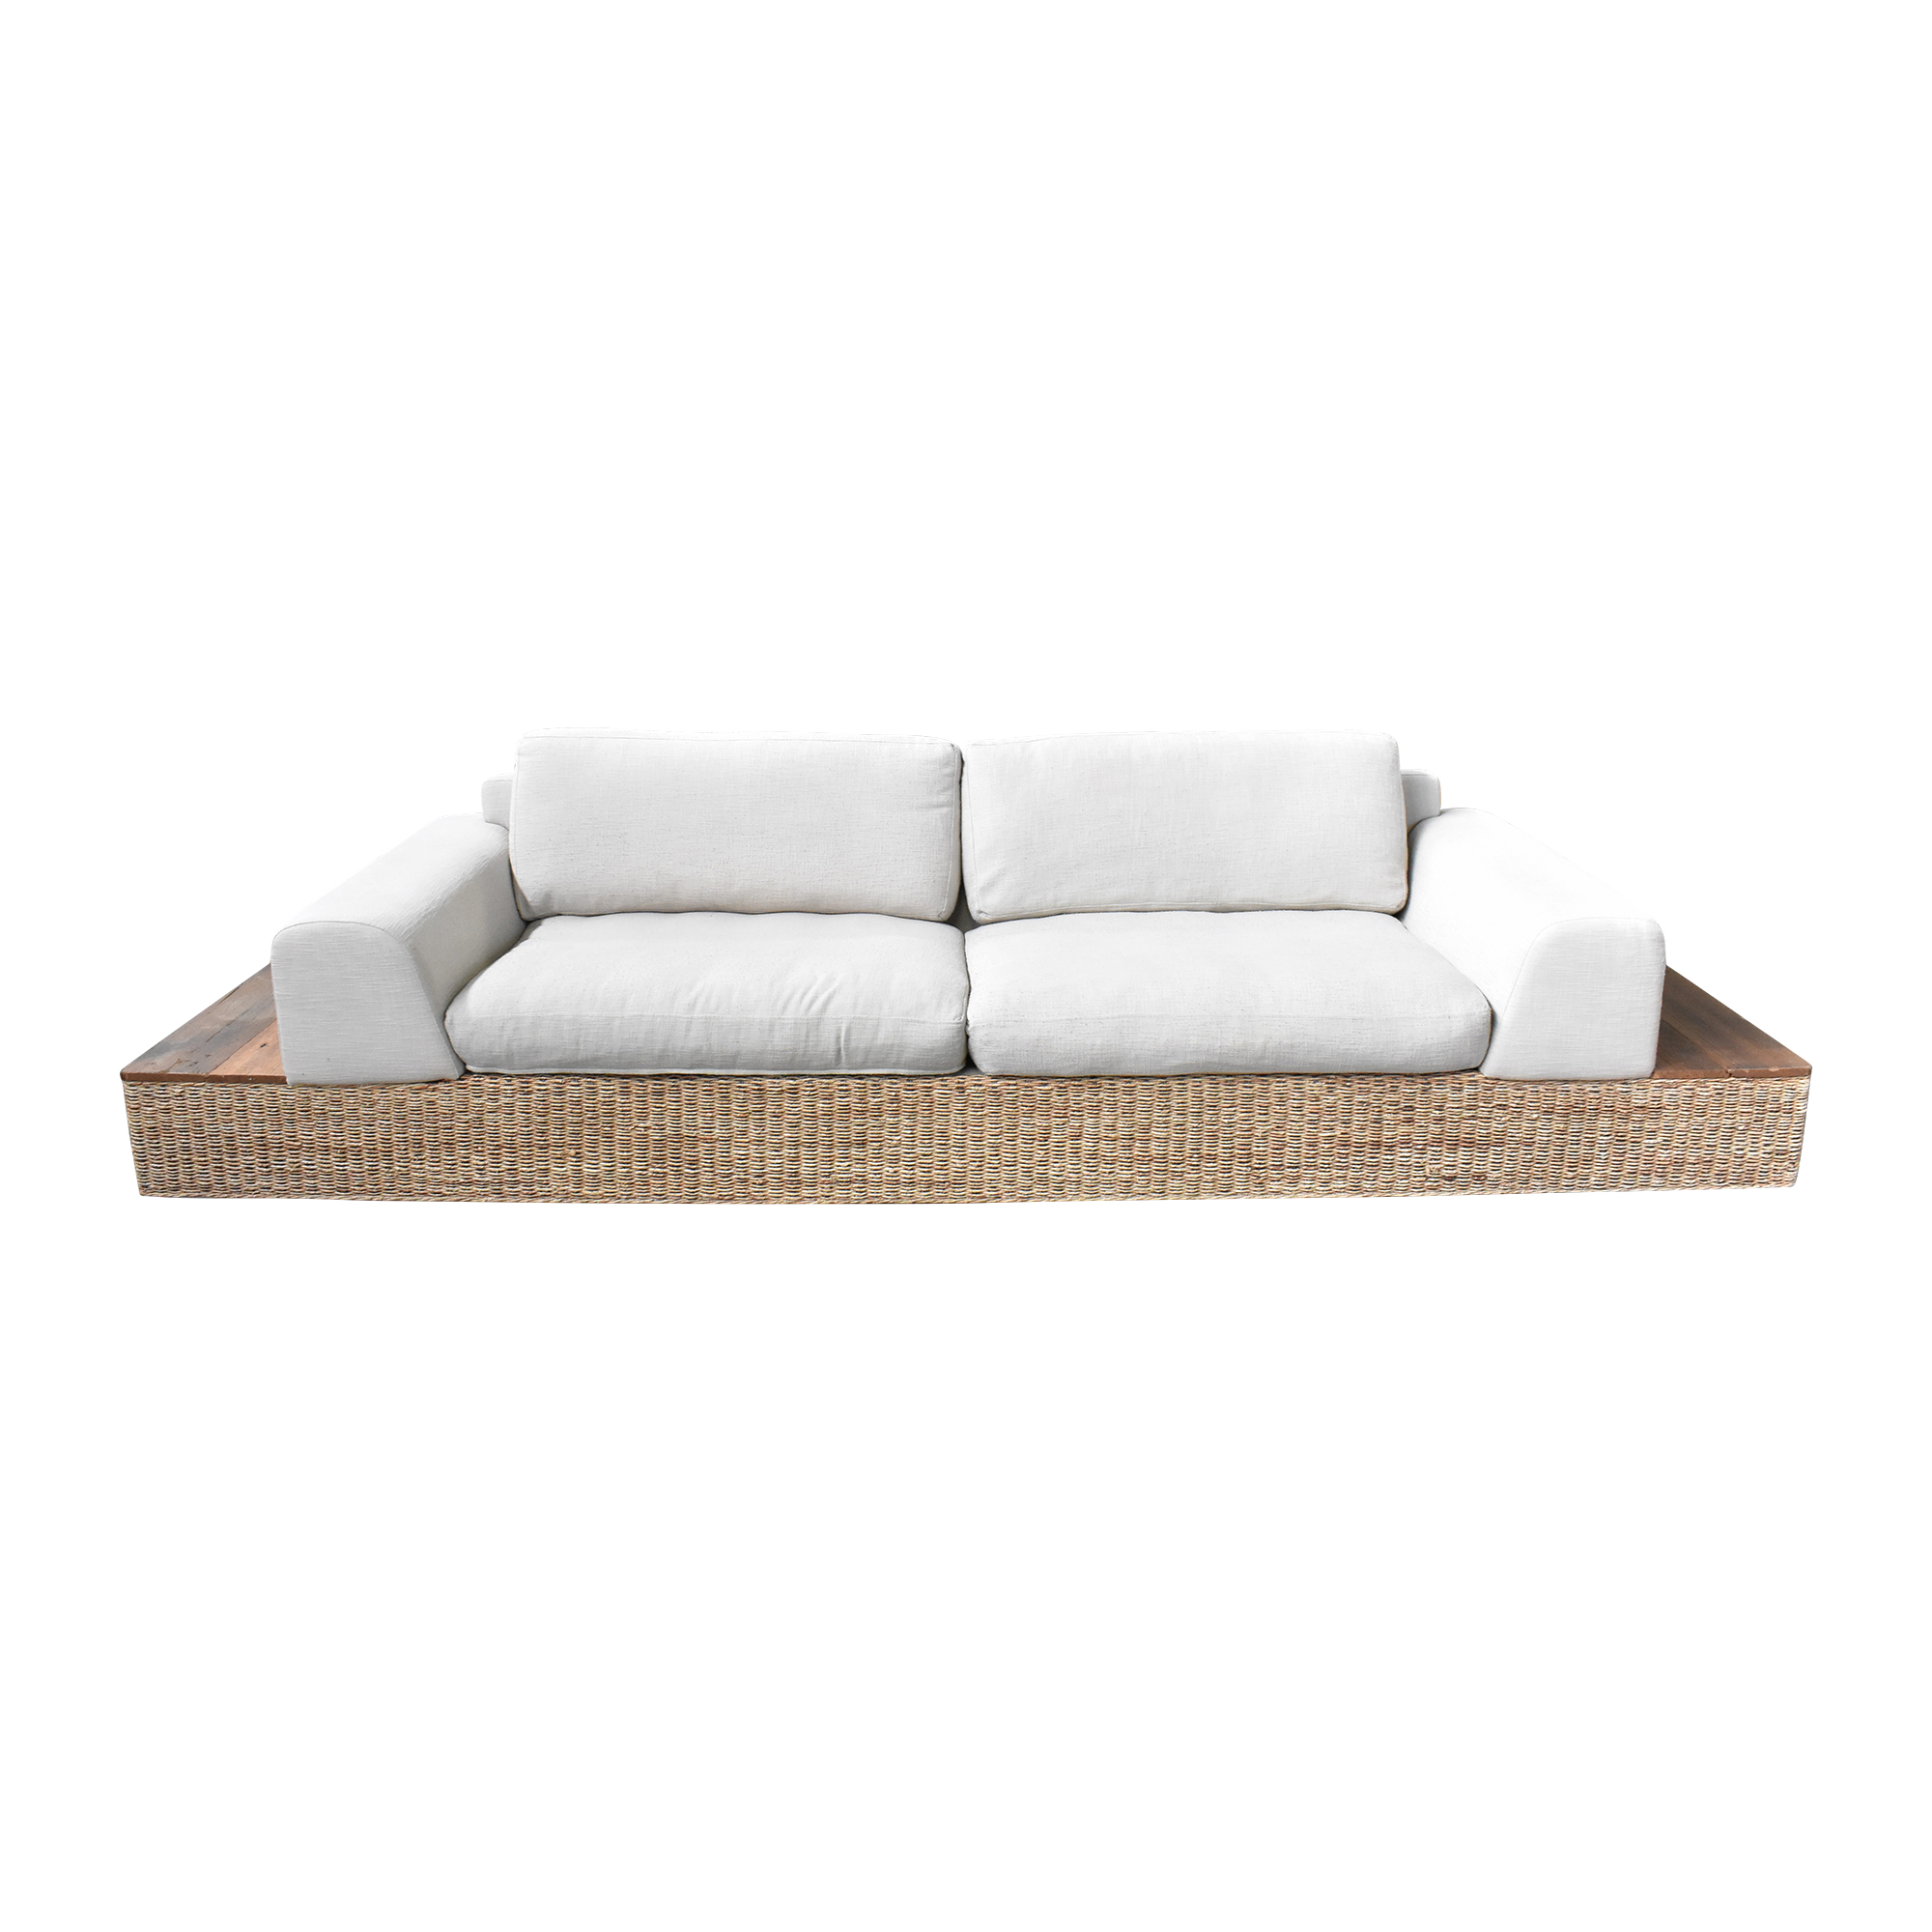 Crate & Barrel Crate & Barrel Hybrid Sofa on sale